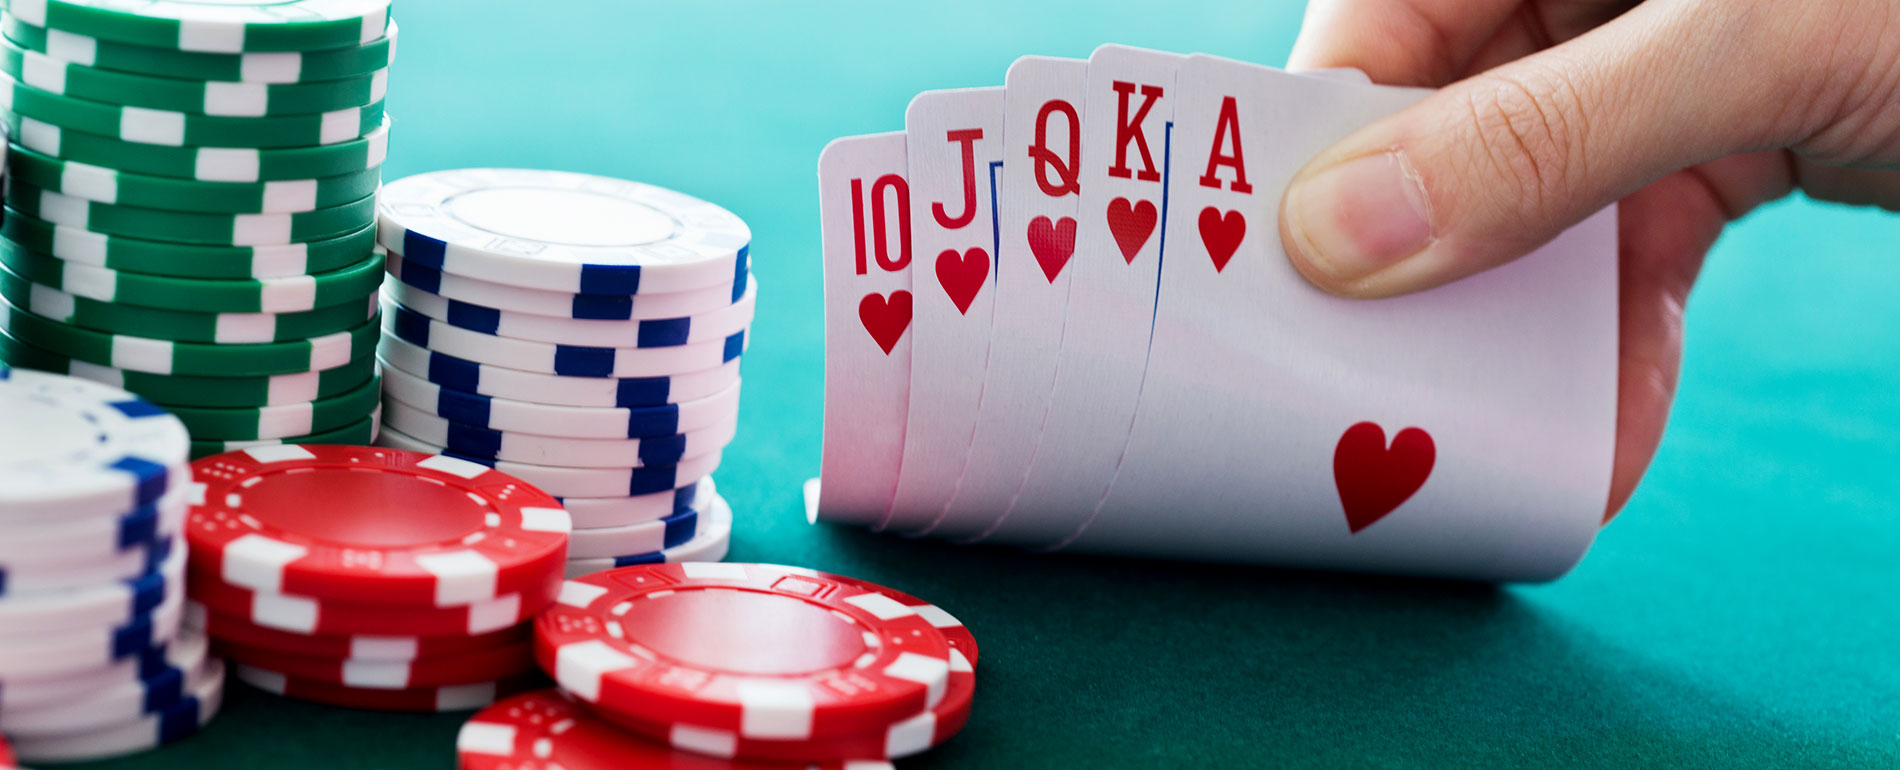 Take a peek at the advantages of playing on online poker gambling sites